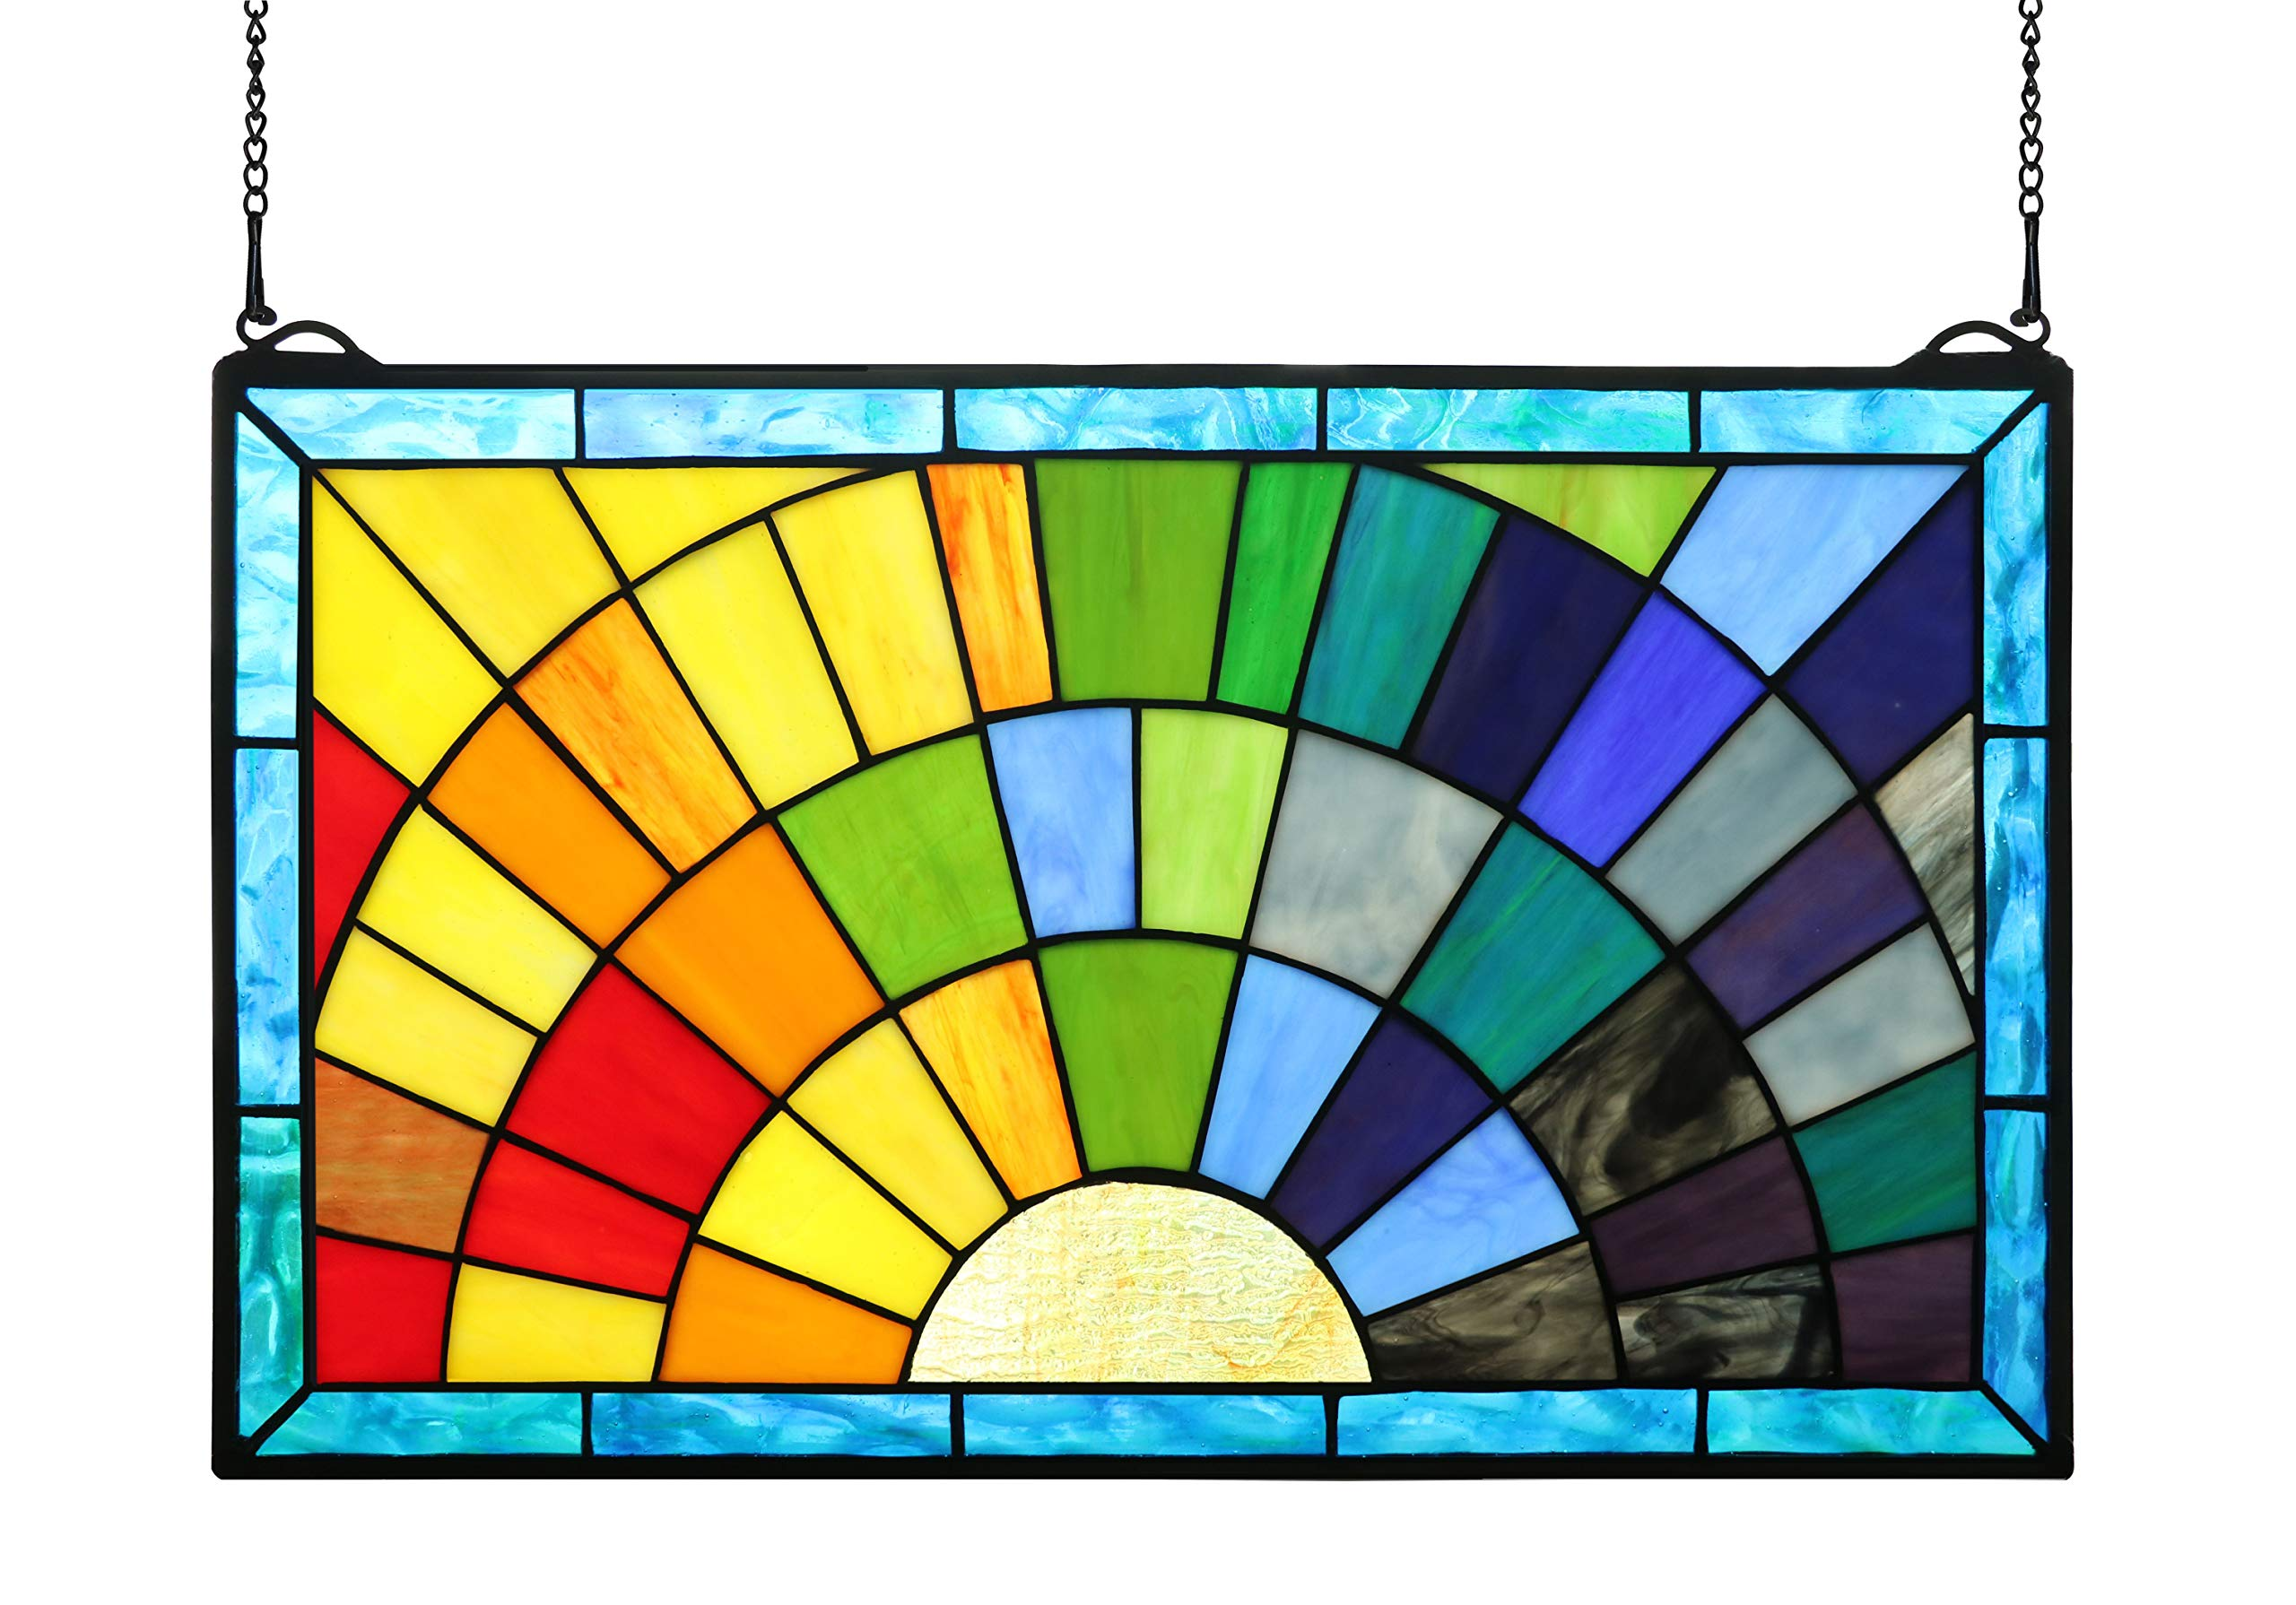 Yolic Tiffany Stained Glass Window Panels 12 Inch Tall Stained Glass Rays of Sunshine Window Panel 20 X 12 Inches Multicolored